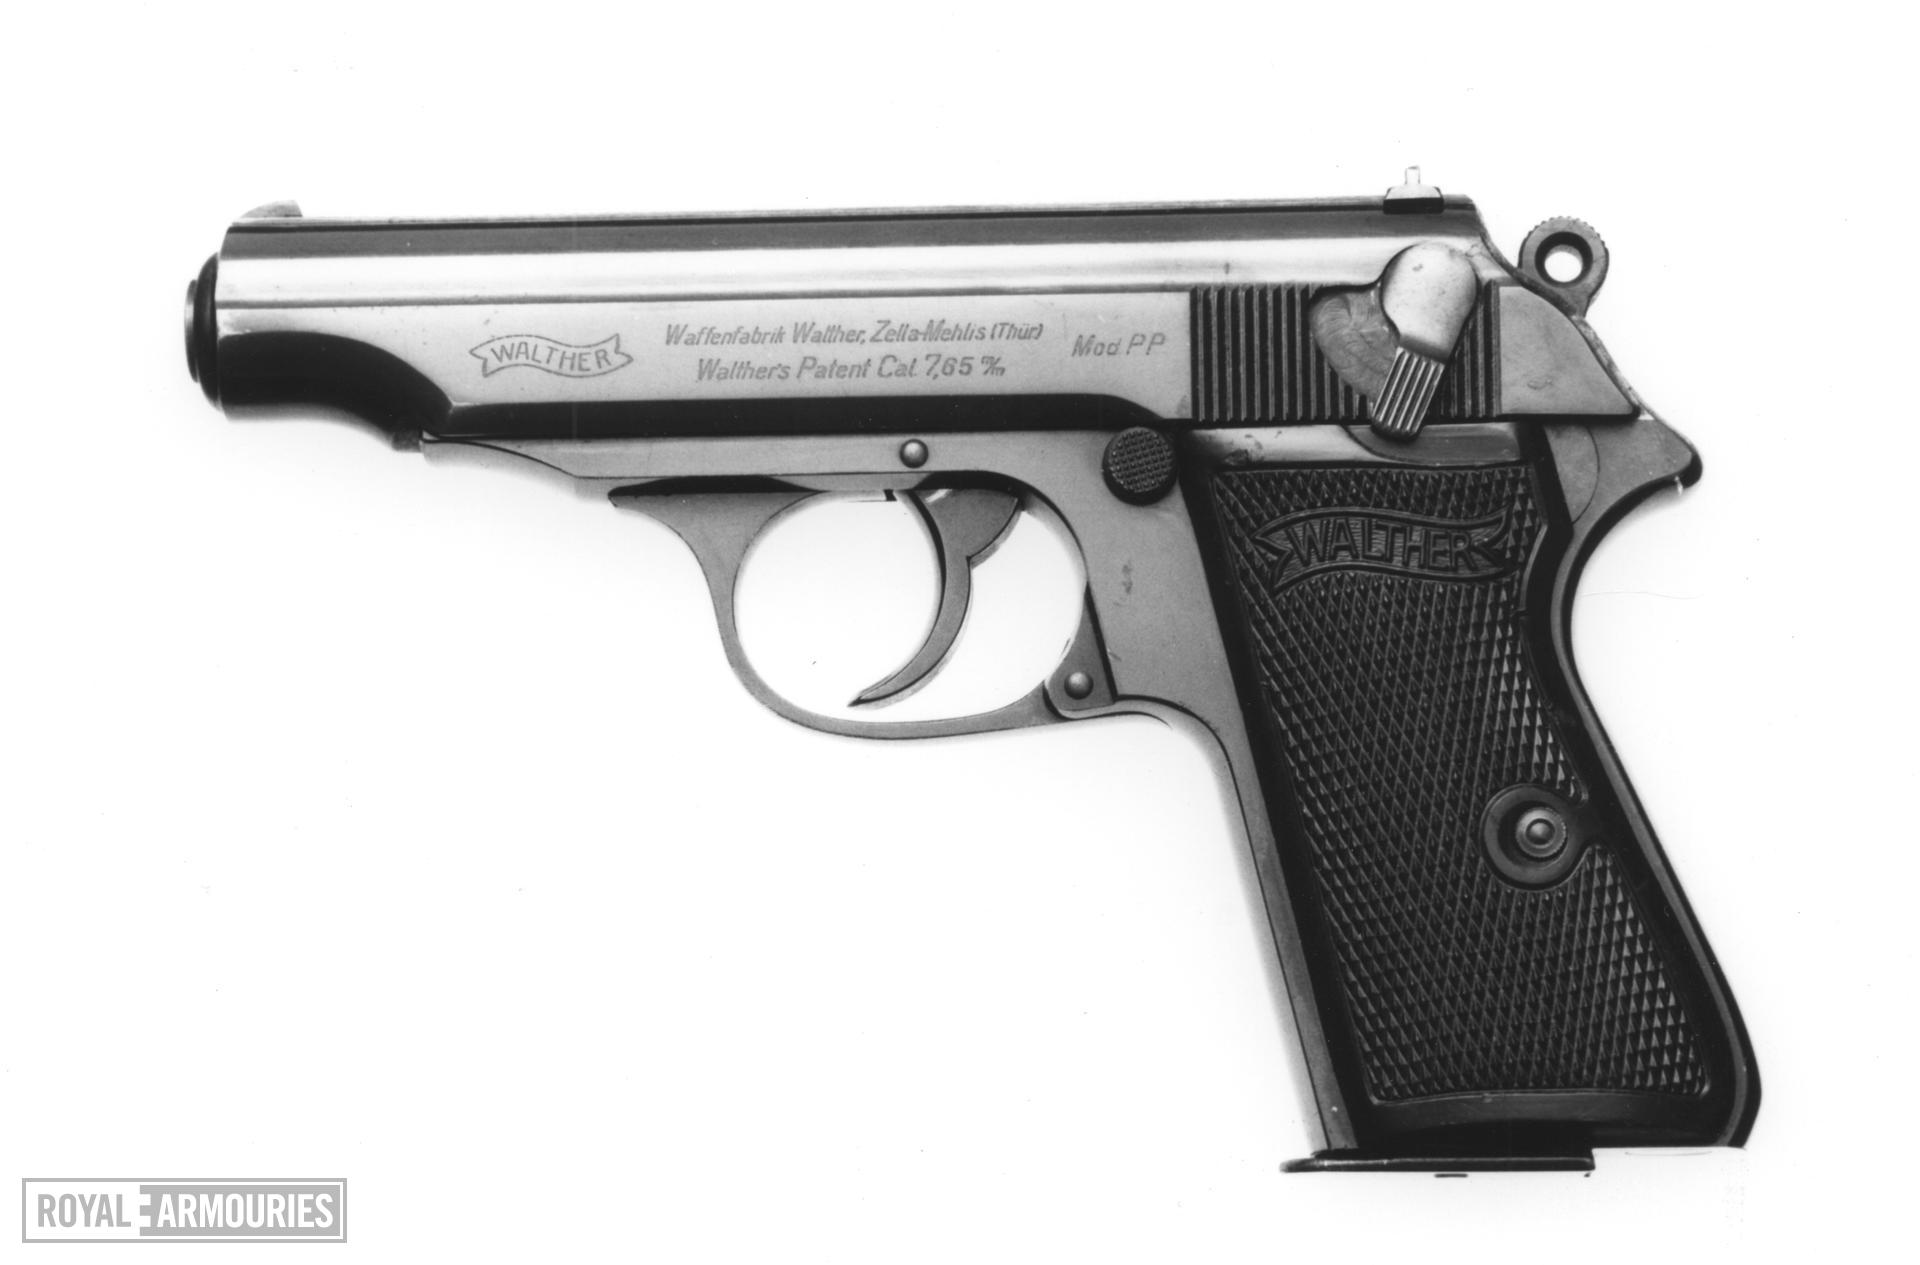 Centrefire self-loading pistol - Walther Model PP